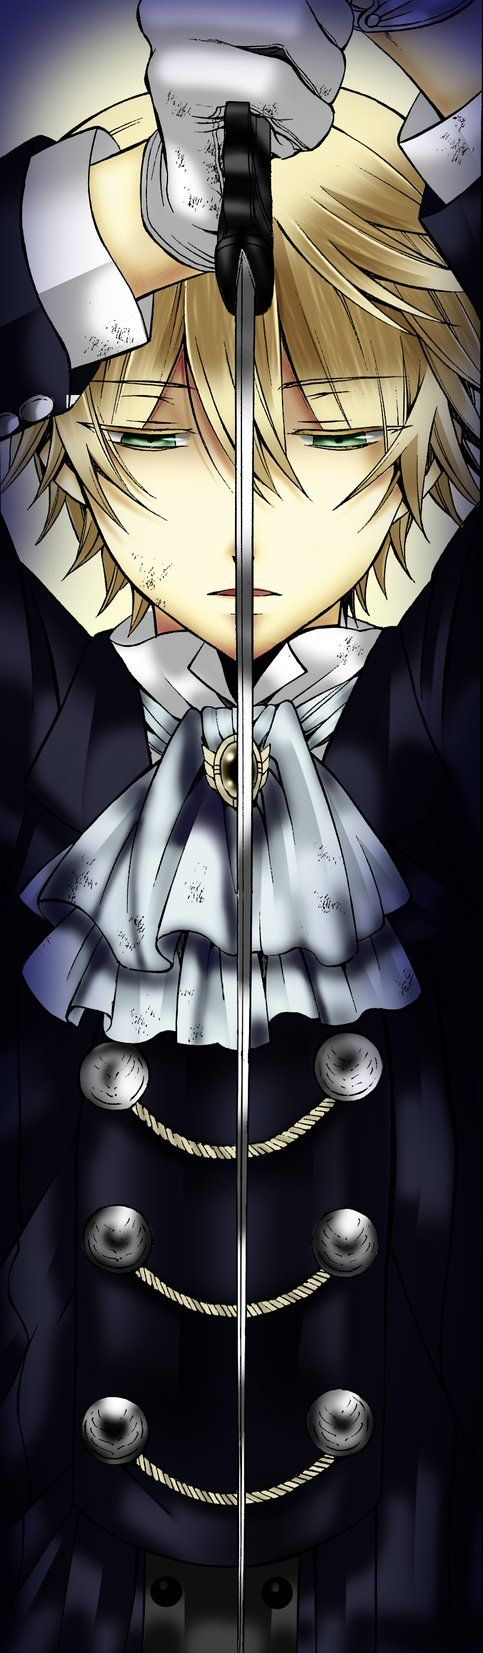 Pandora Hearts Oz Vessalius  Really love his expression >_< so cool that way!